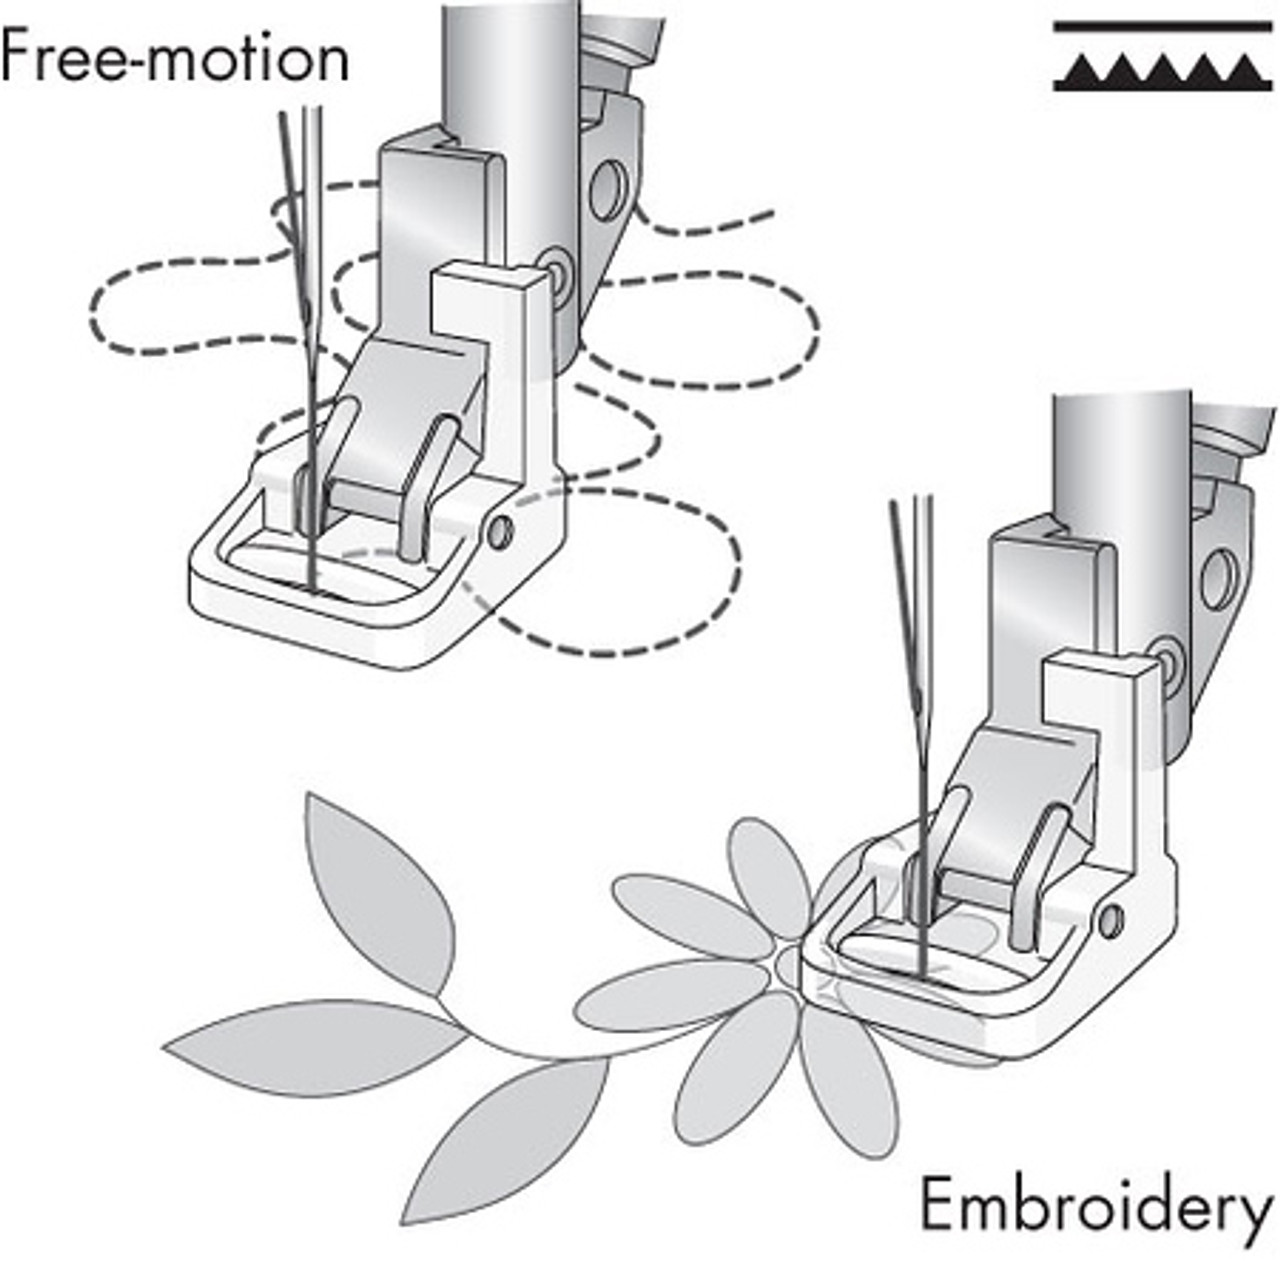 Embroidery/Sensormatic Free-motion Foot  J Series